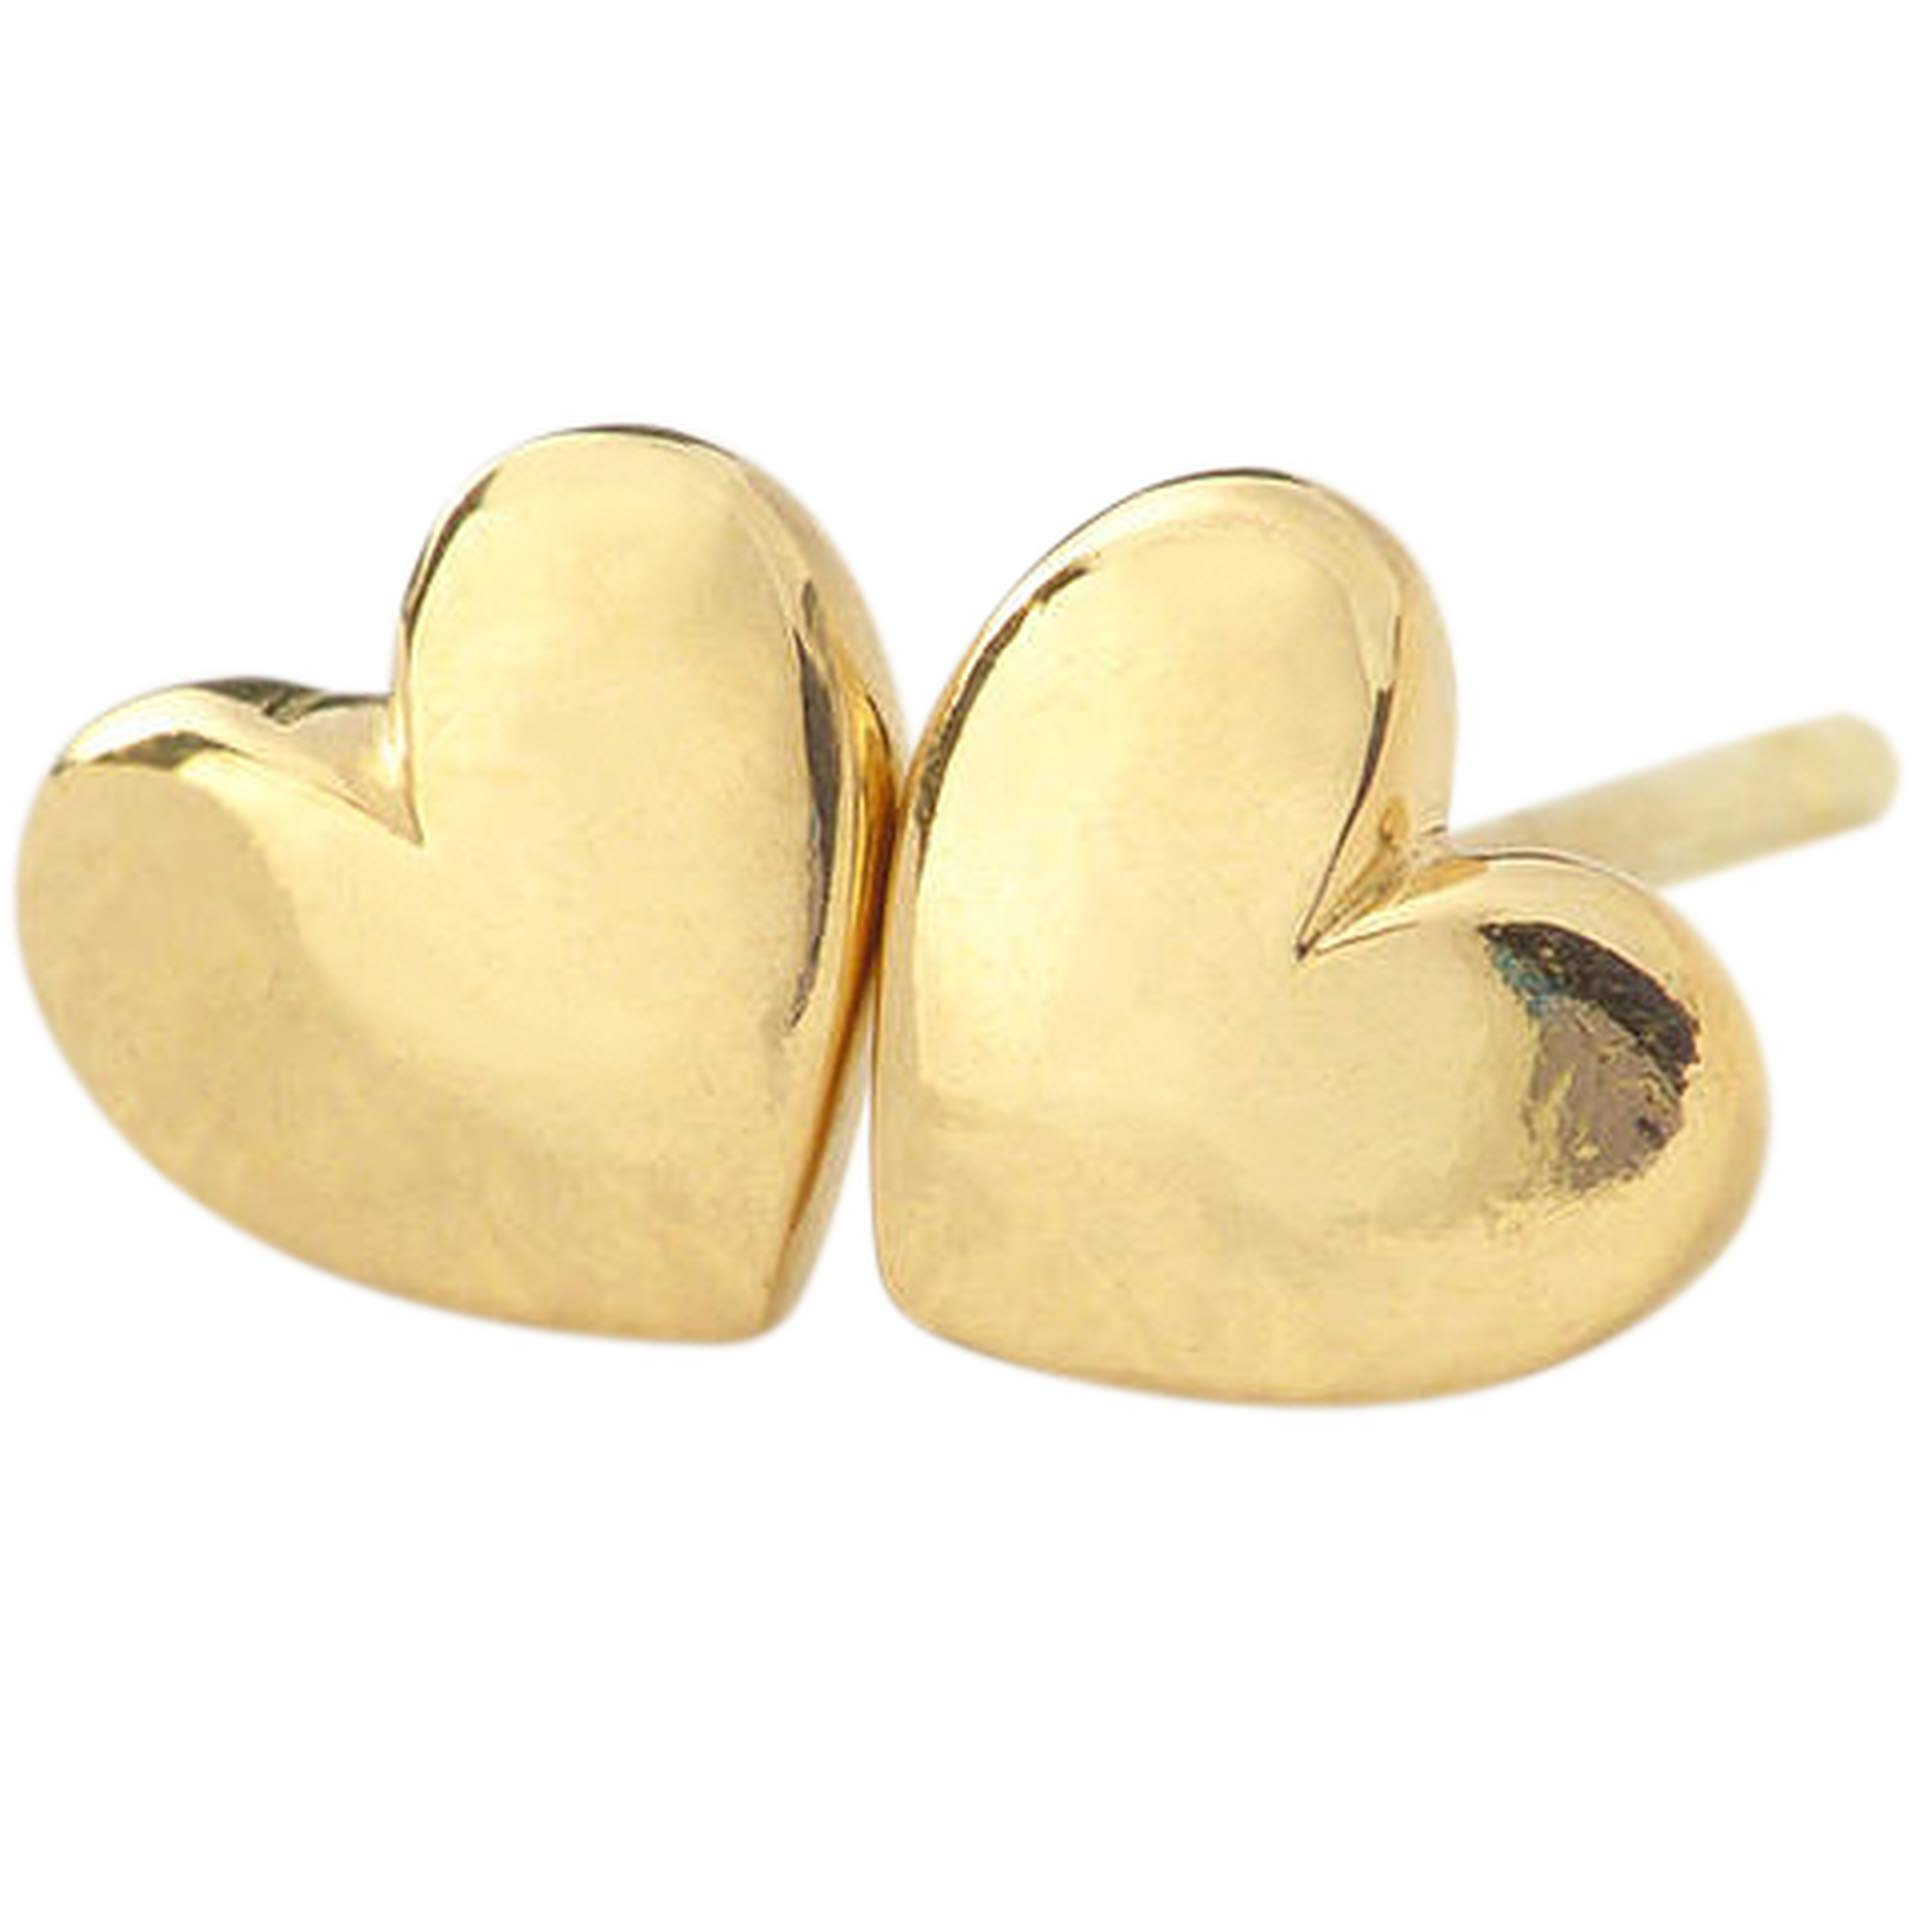 Lifetime Jewelry Heart Stud Earrings - Safe for Most Sensitive Ears - Hypoallergenic - up to 20X More 24k Gold Plating Than Other Studs - Free Lifetime Replacement Guarantee - Made in USA by Lifetime Jewelry